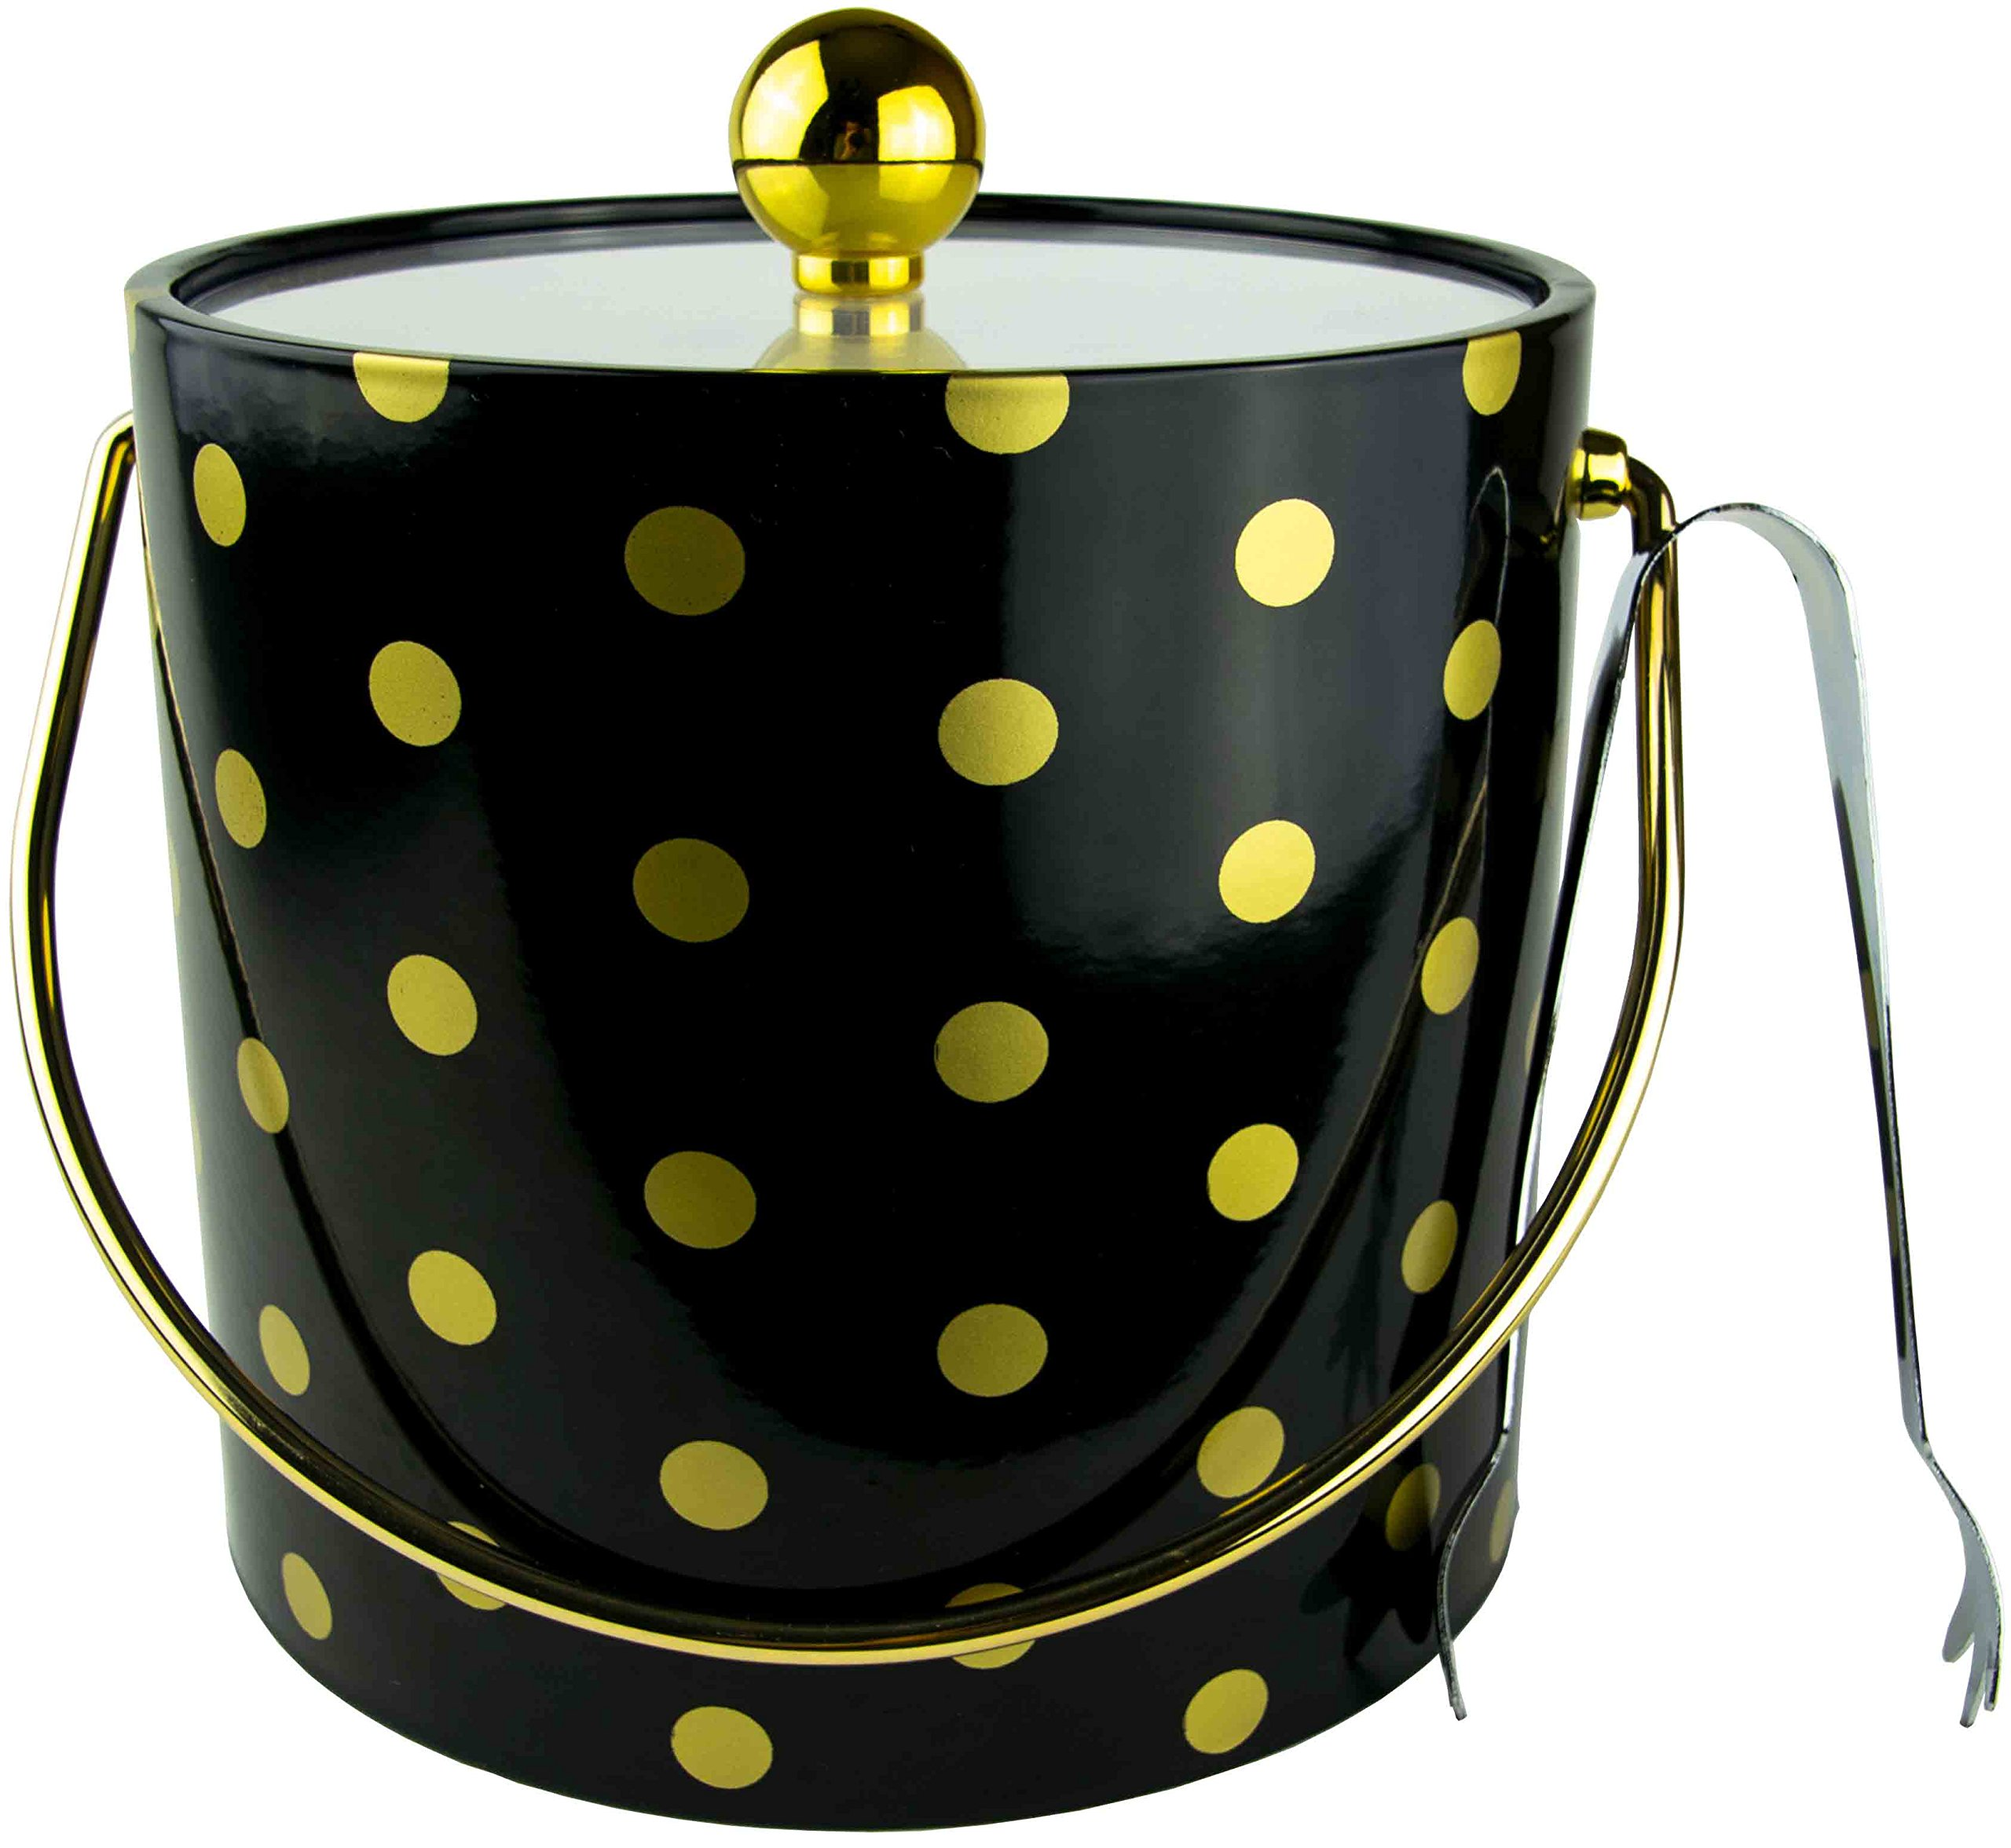 Hand Made In USA Black With Gold Polka Dots Double Walled 3-Quart Insulated Ice Bucket With Bonus Ice Tongs